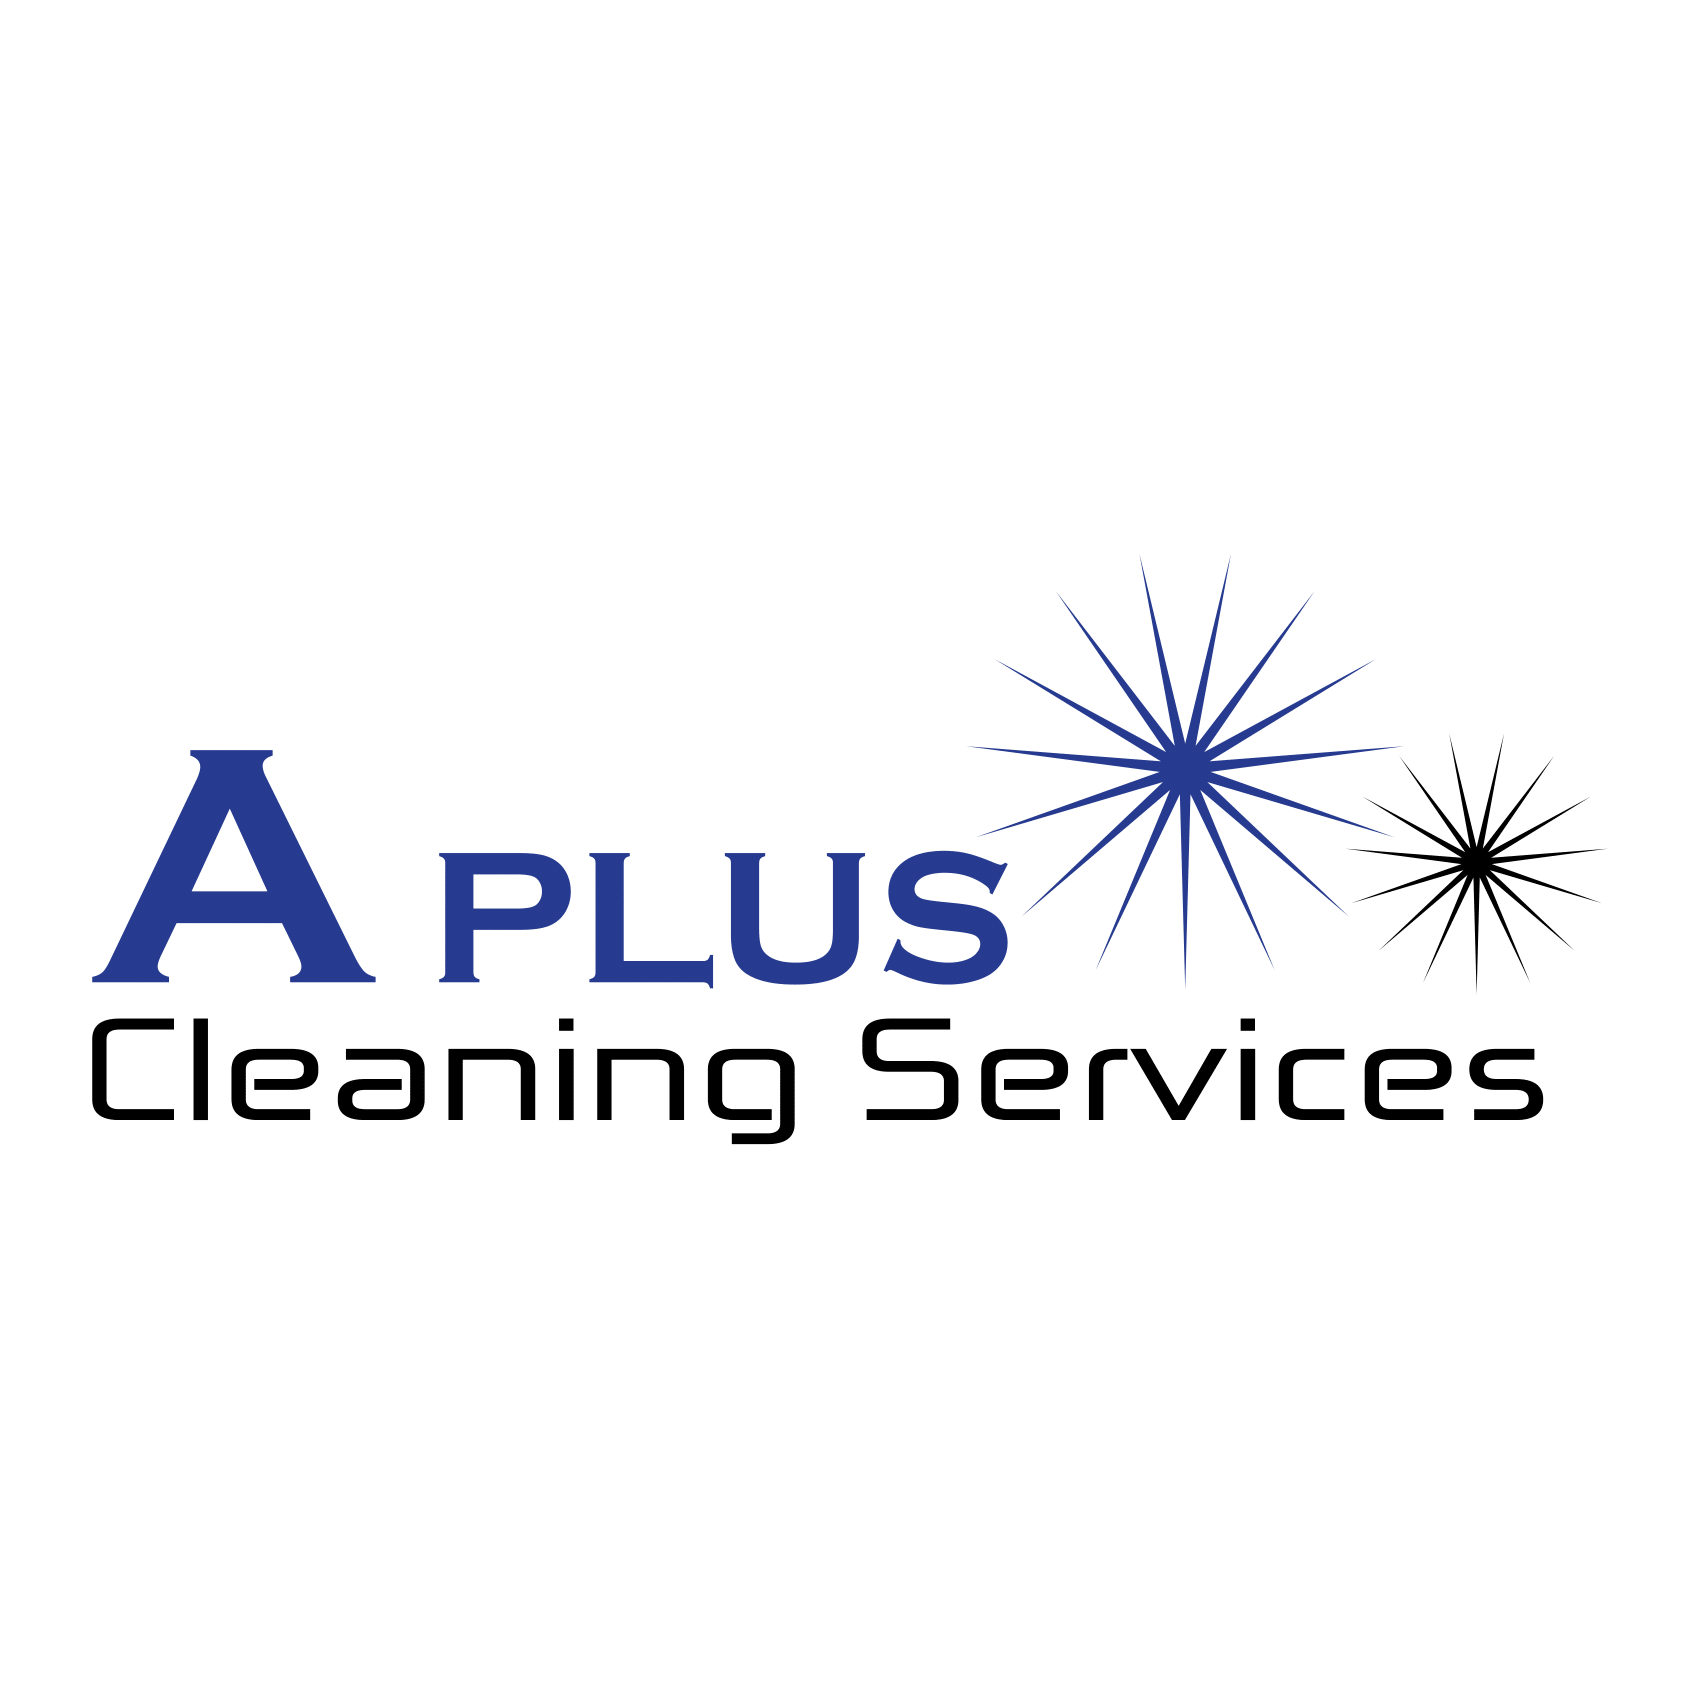 A Plus Cleaning Services, LLC